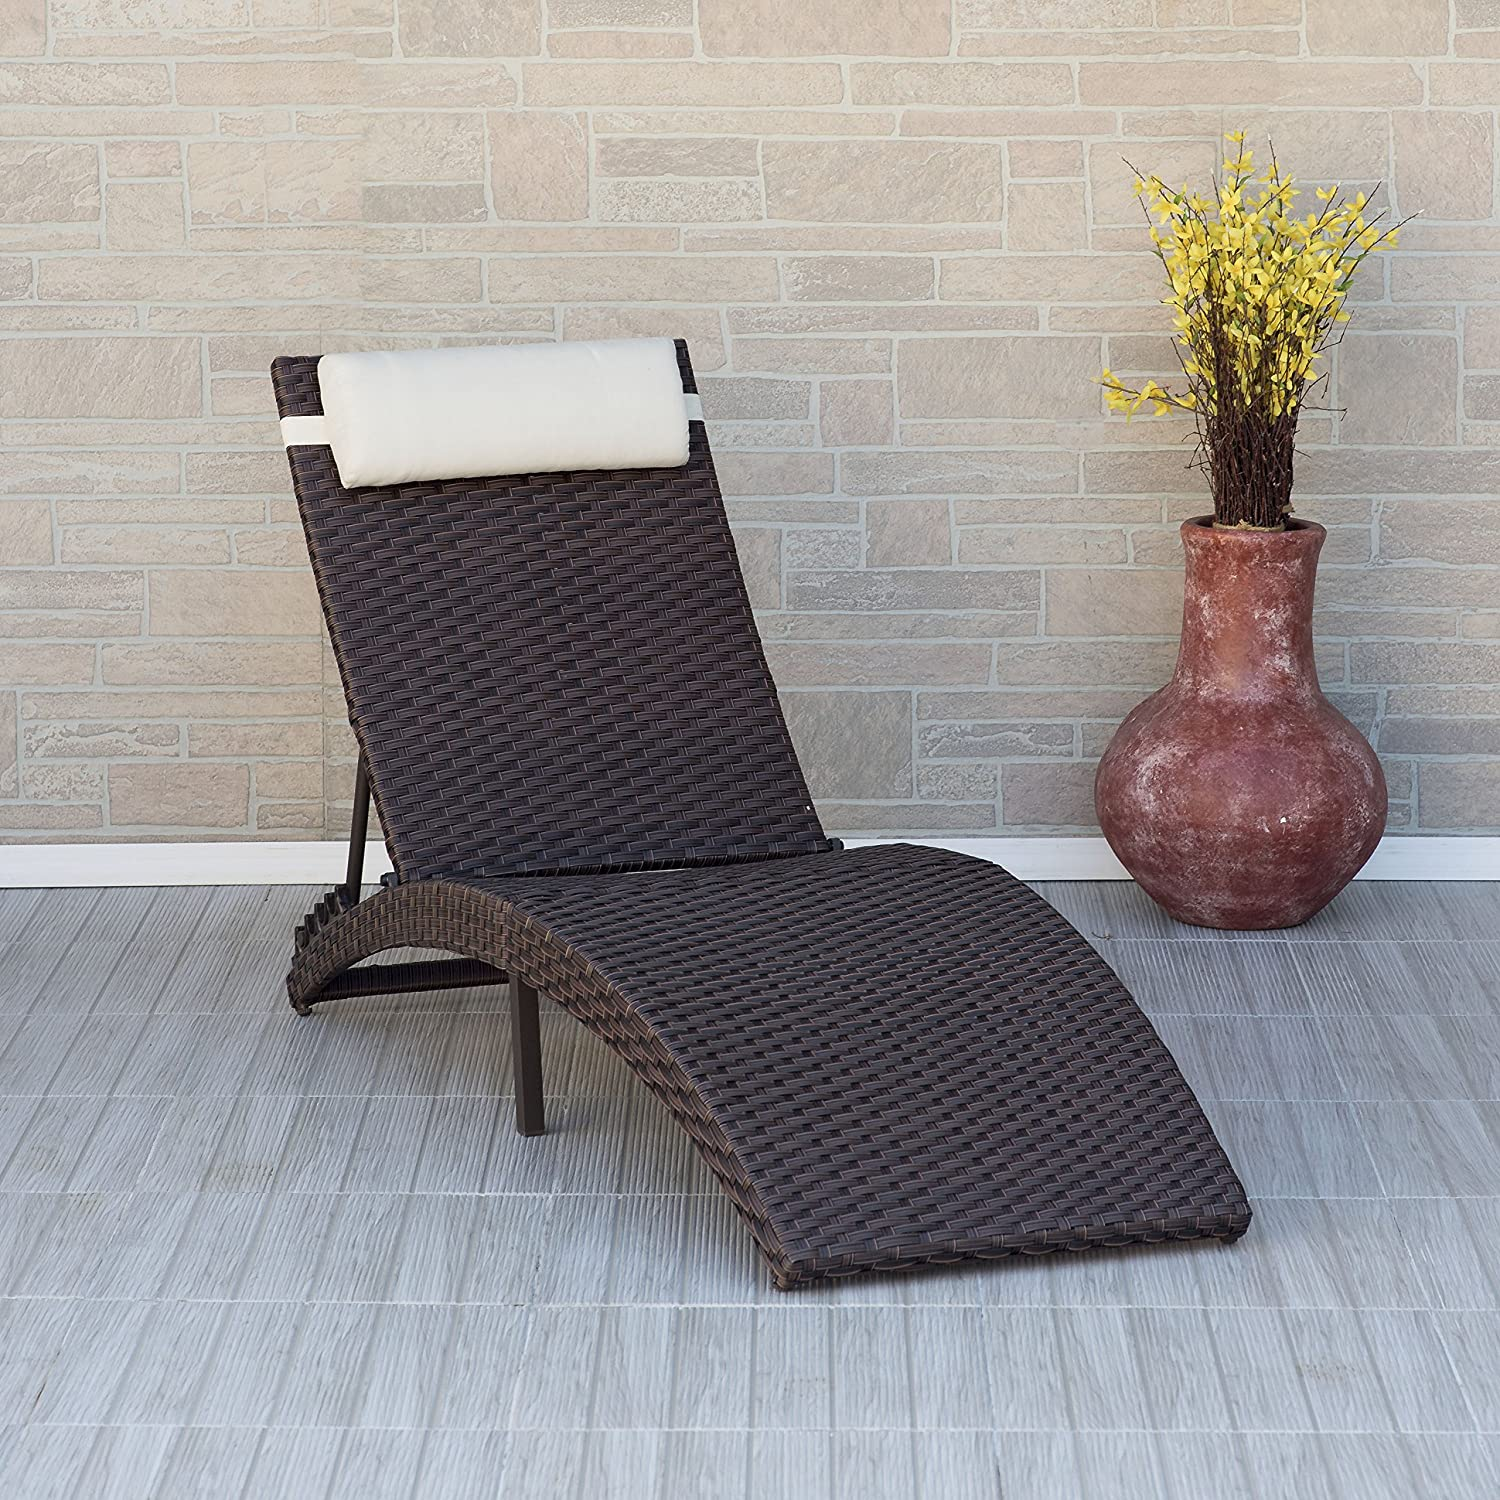 Atlantic Wicker Folding Chaise Lounger, Brown